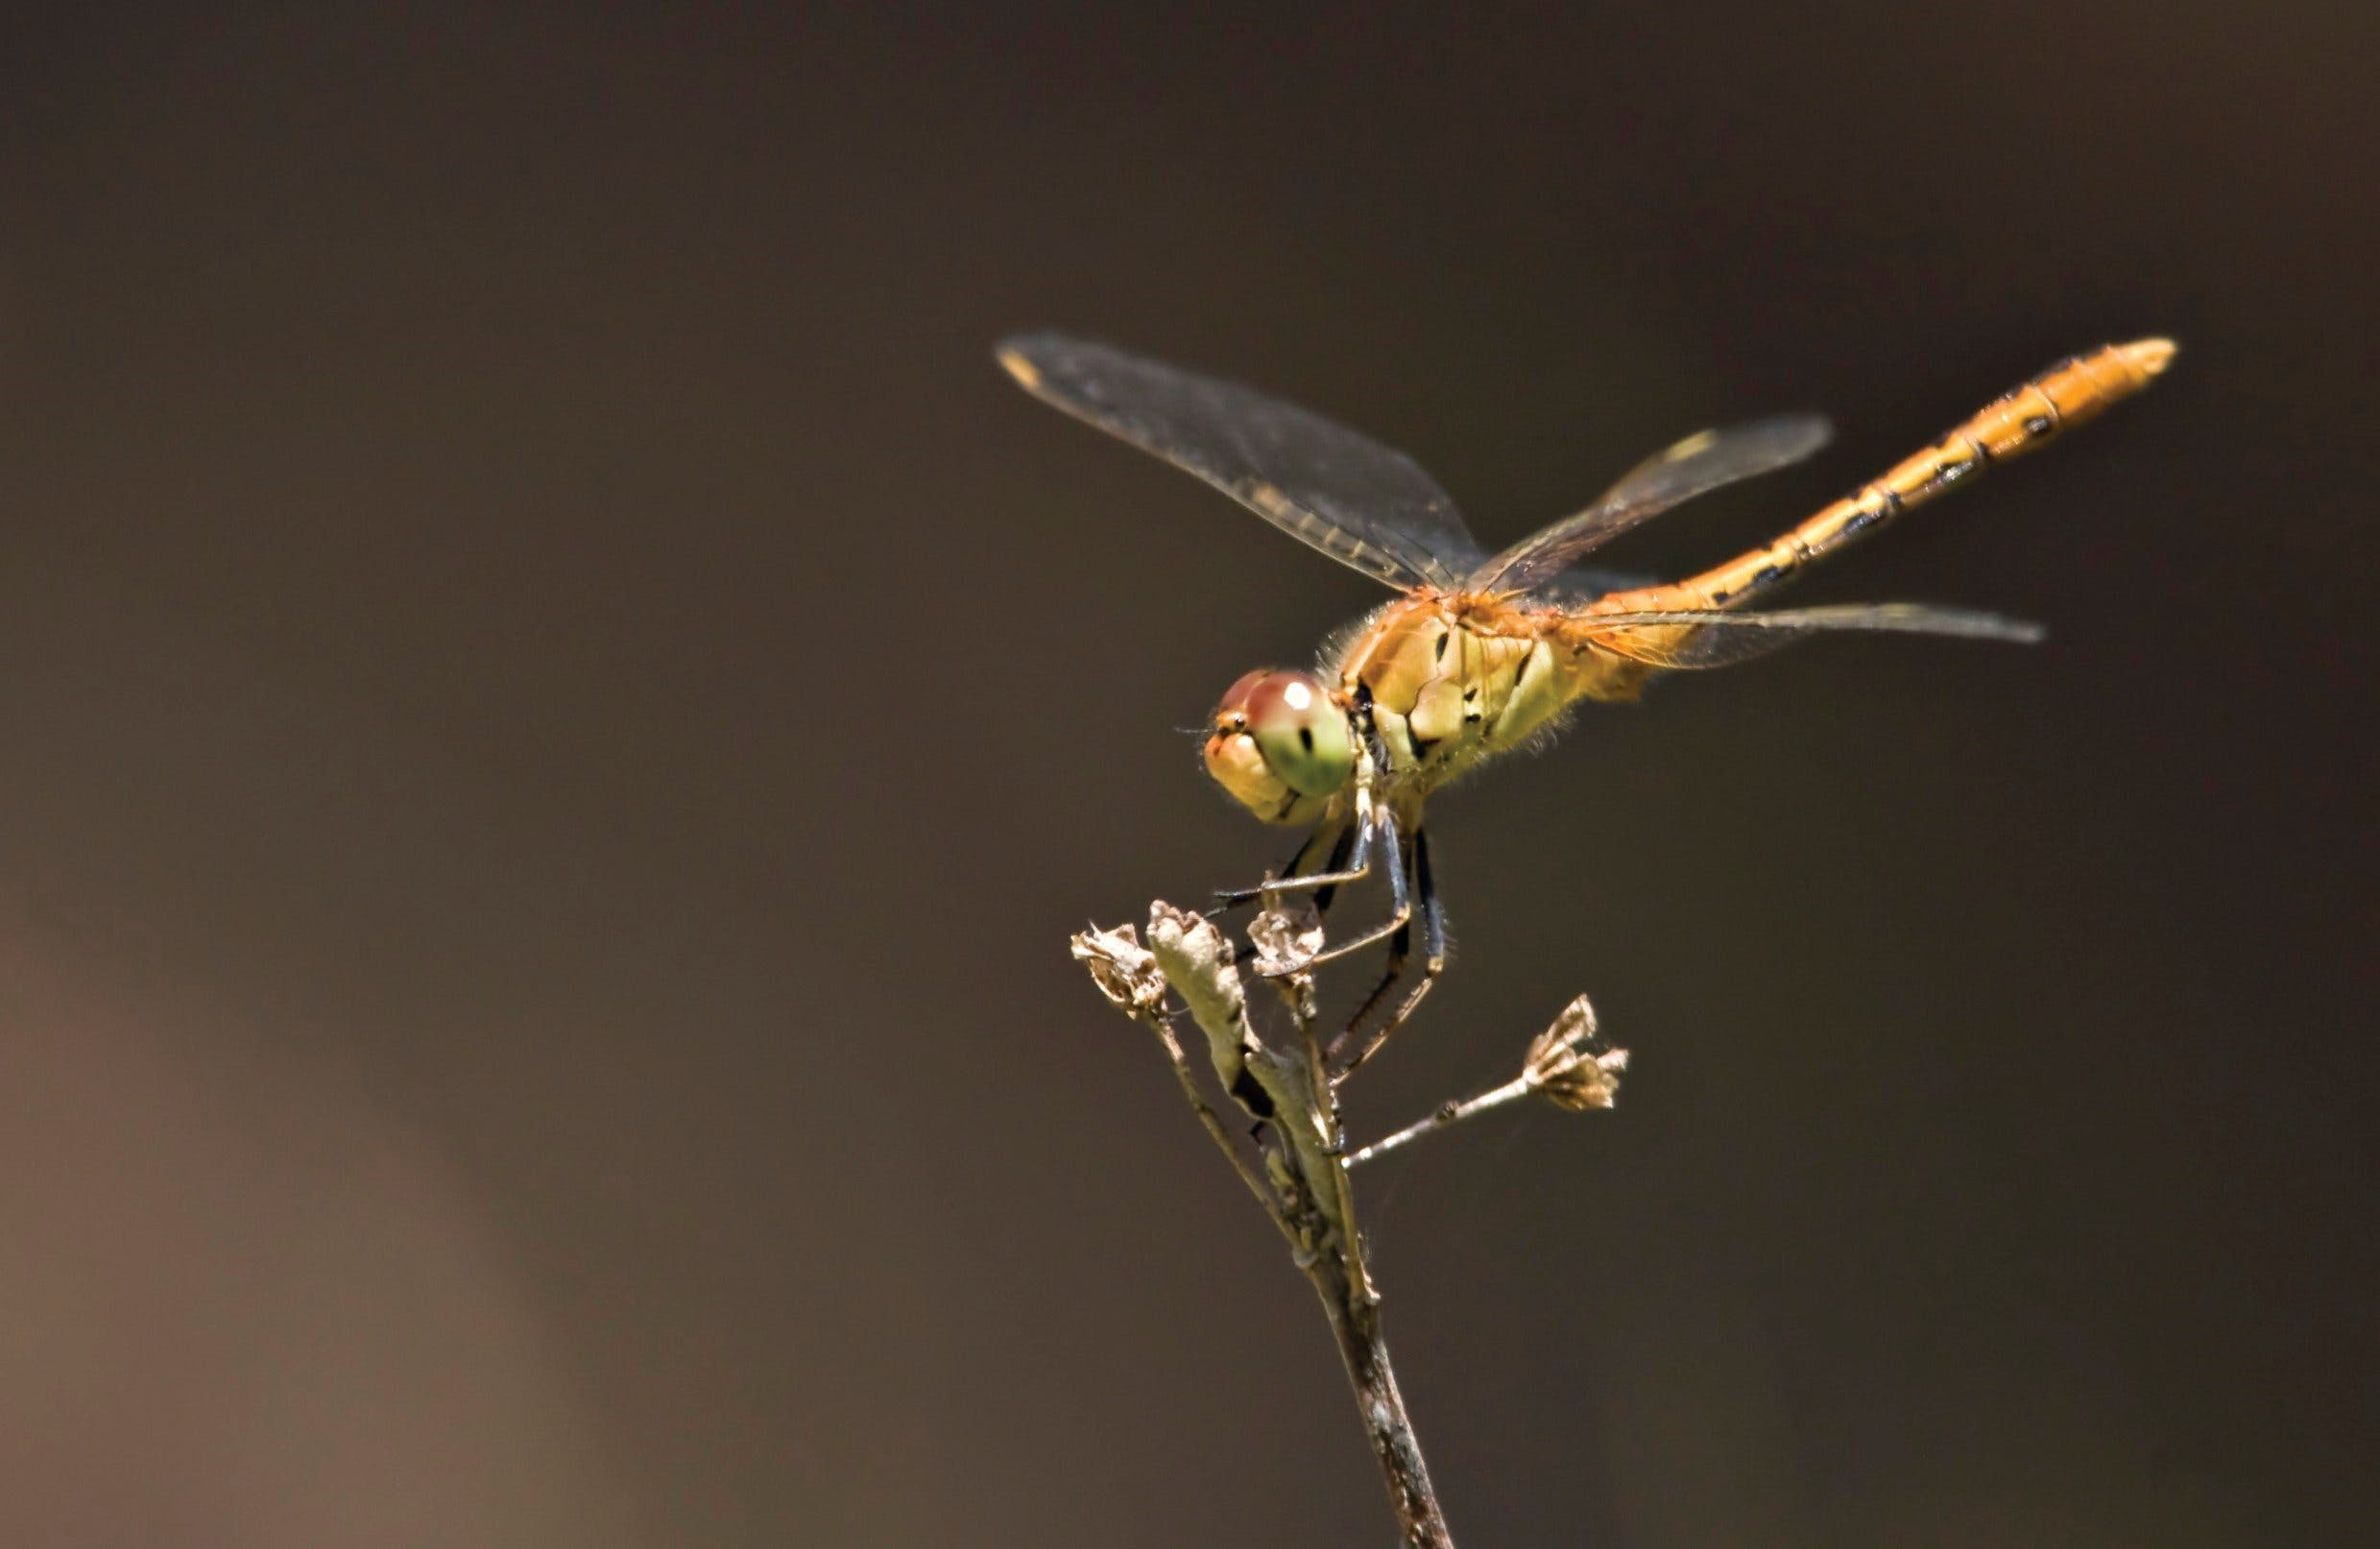 Dragonfly Discovery - Accommodation Melbourne